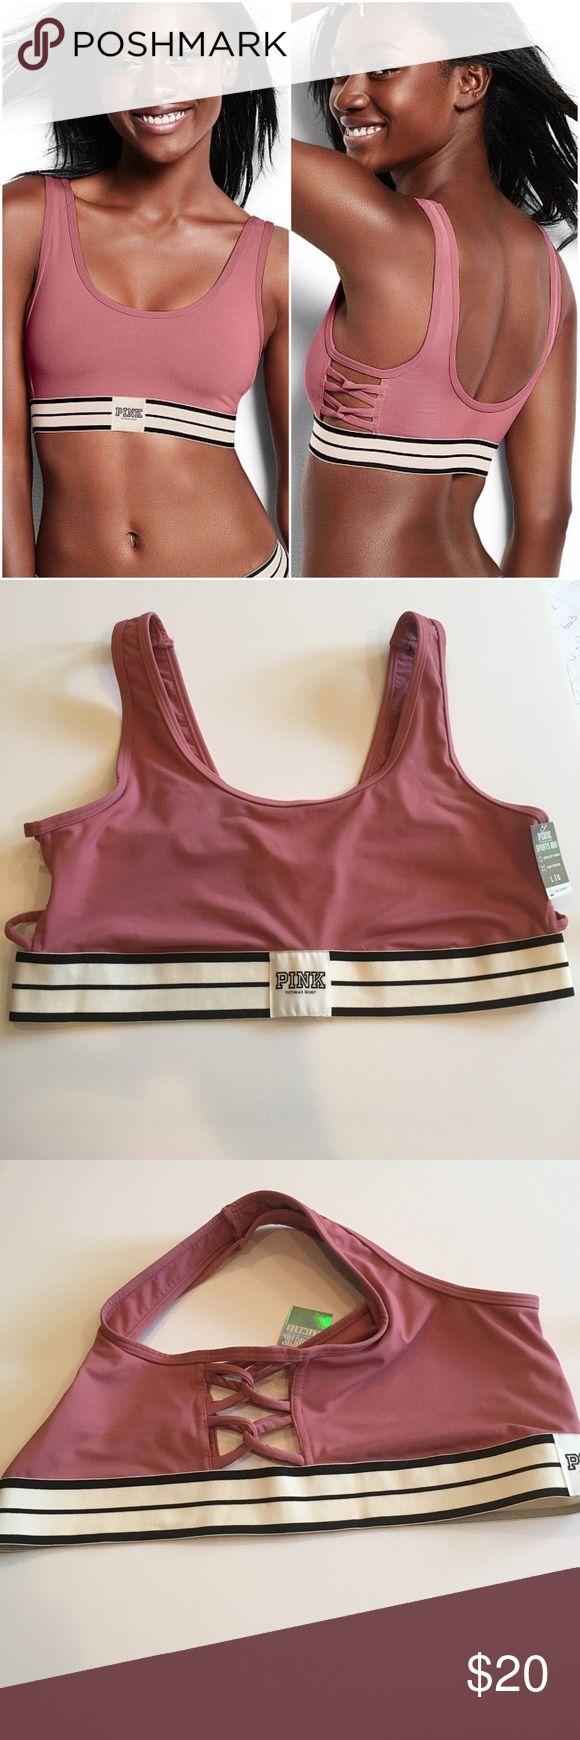 🎁VS Pink Sports Bra🎁 Super cute sports bra from PINK! Sexy mauve pink color with cream and black detailing, full coverage with side cutouts, designed for light impact activities. Layer under mesh or a muscle tee for the perfect summer look! Size L, NWT, never worn, purchased at local PINK store. 🚫TRADES🚫LOWBALLING🚫OFFLINE TRANSACTIONS🚫 ✅BUNDLES✅REASONABLE OFFERS✅ Happy Poshing! 😄 PINK Victoria's Secret Intimates & Sleepwear Bras